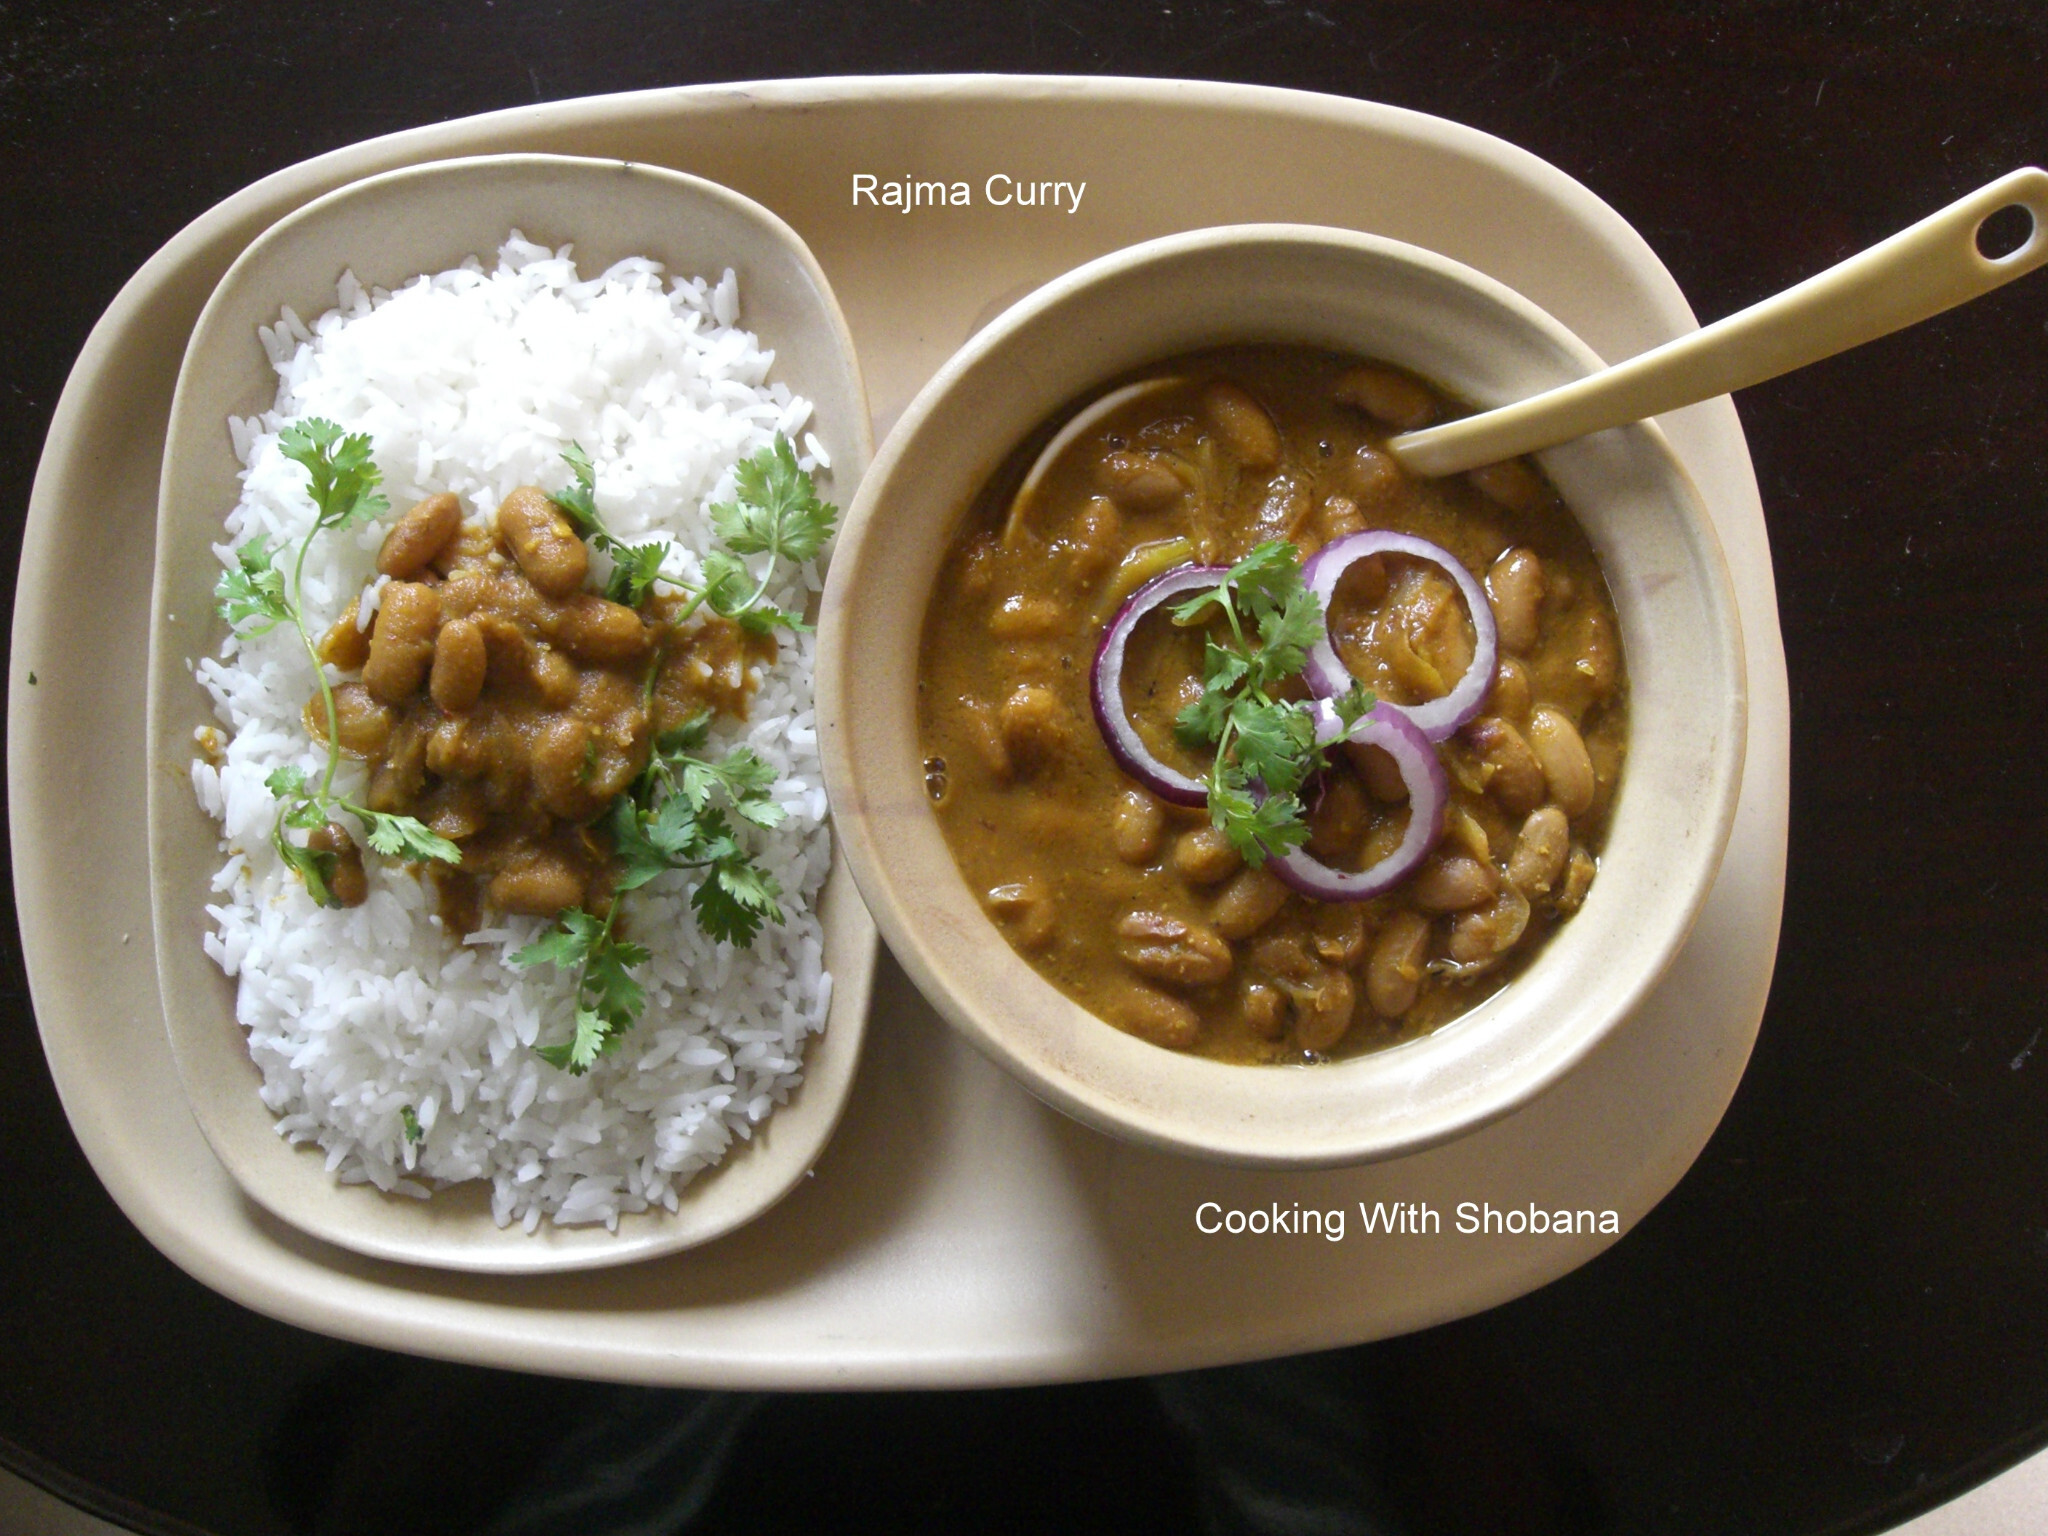 RAJMA (RED KIDNEY BEANS) CURRY